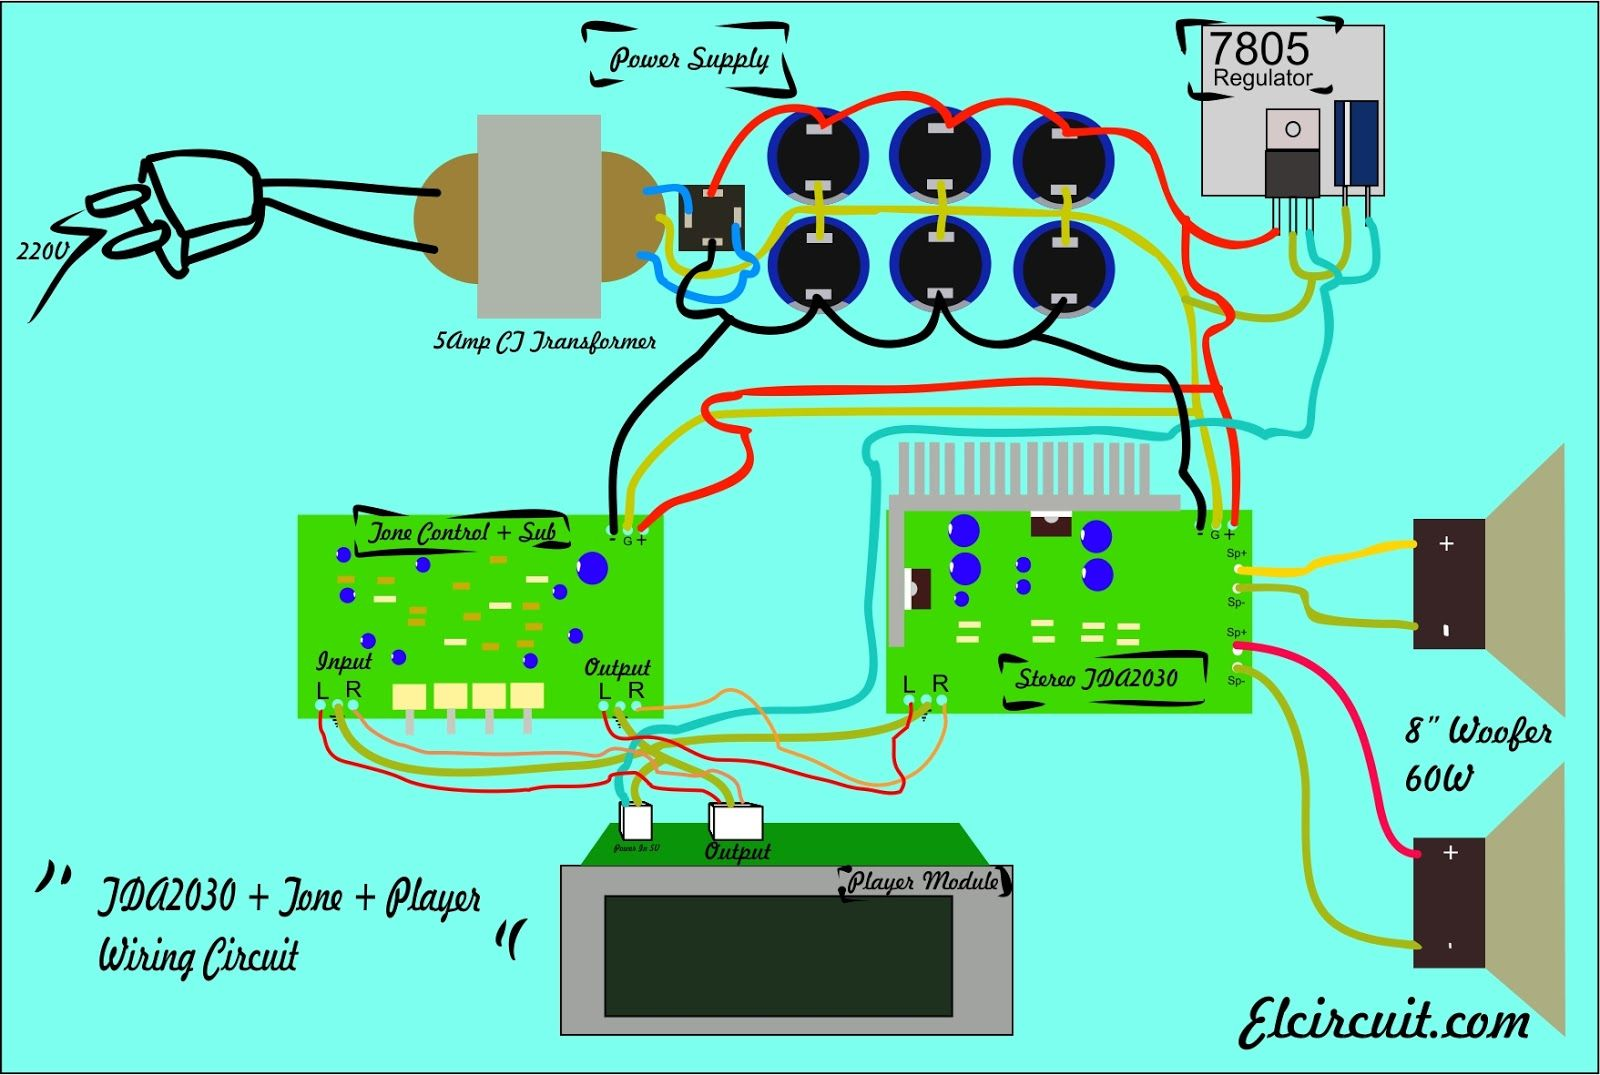 medium resolution of wiring circuit diagram tda2030 tone control subwoofer mp3 player